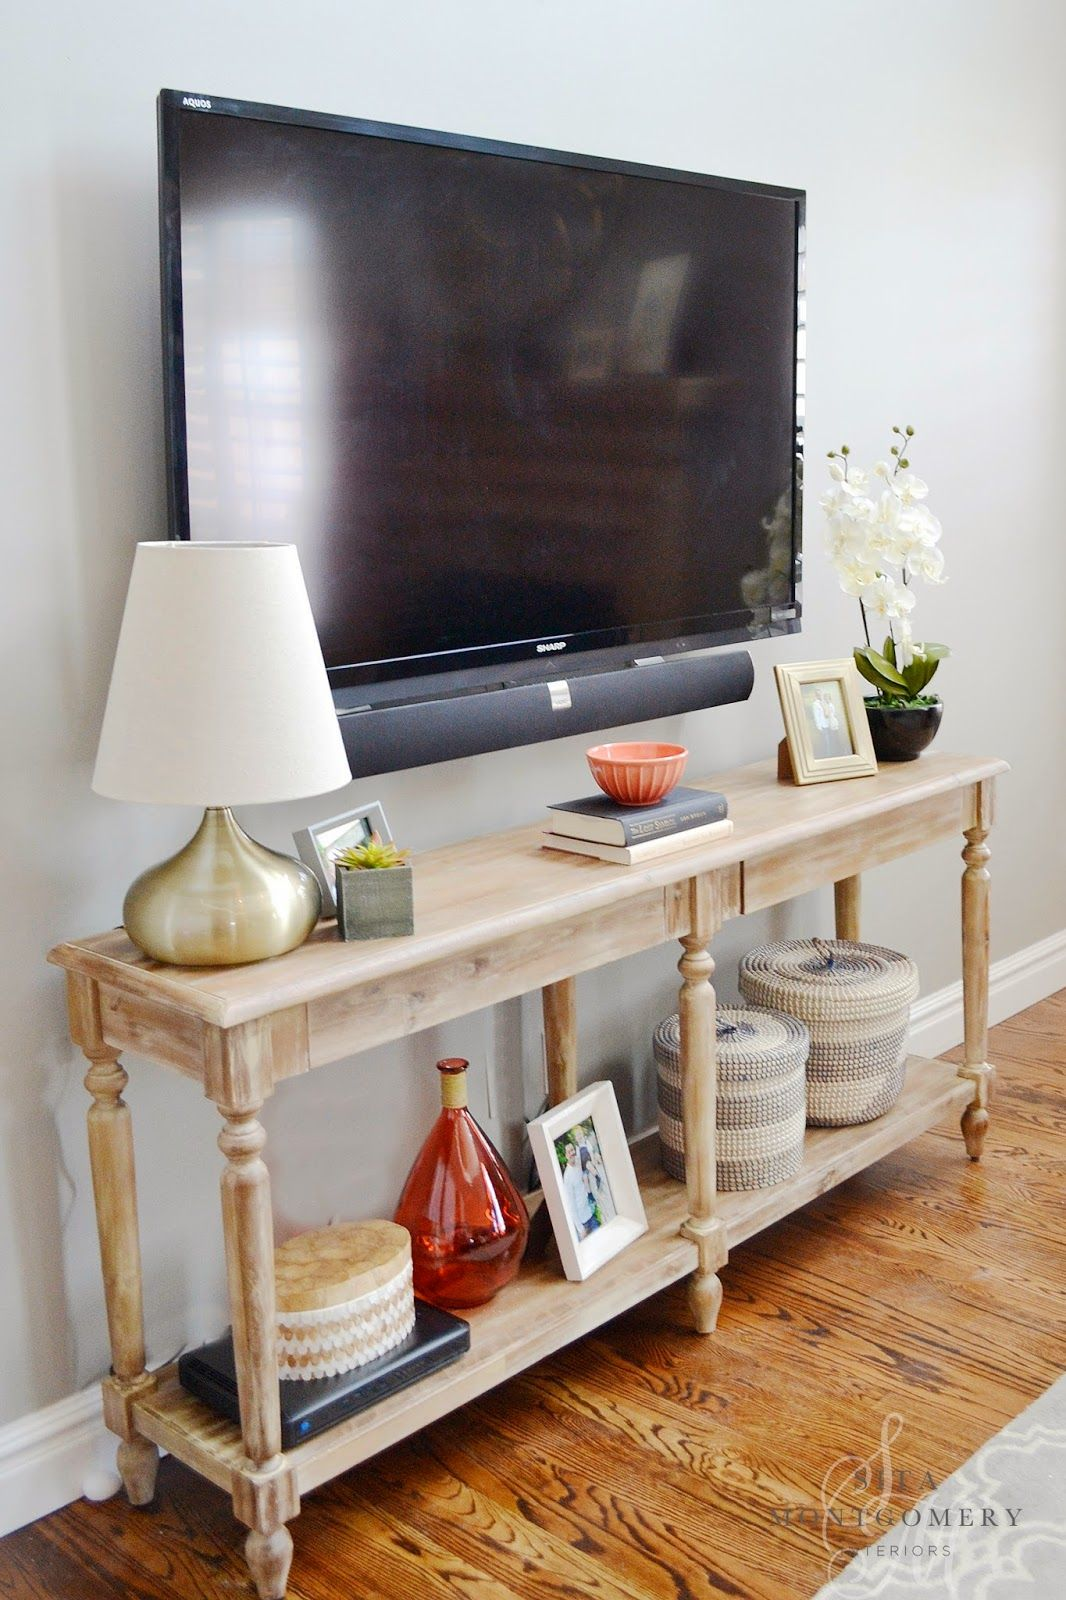 Sita Montgomery Interiors Portfolio Living Room Tv Stand Tv Stand And Coffee Table Living Room Coffee Table [ 1600 x 1066 Pixel ]